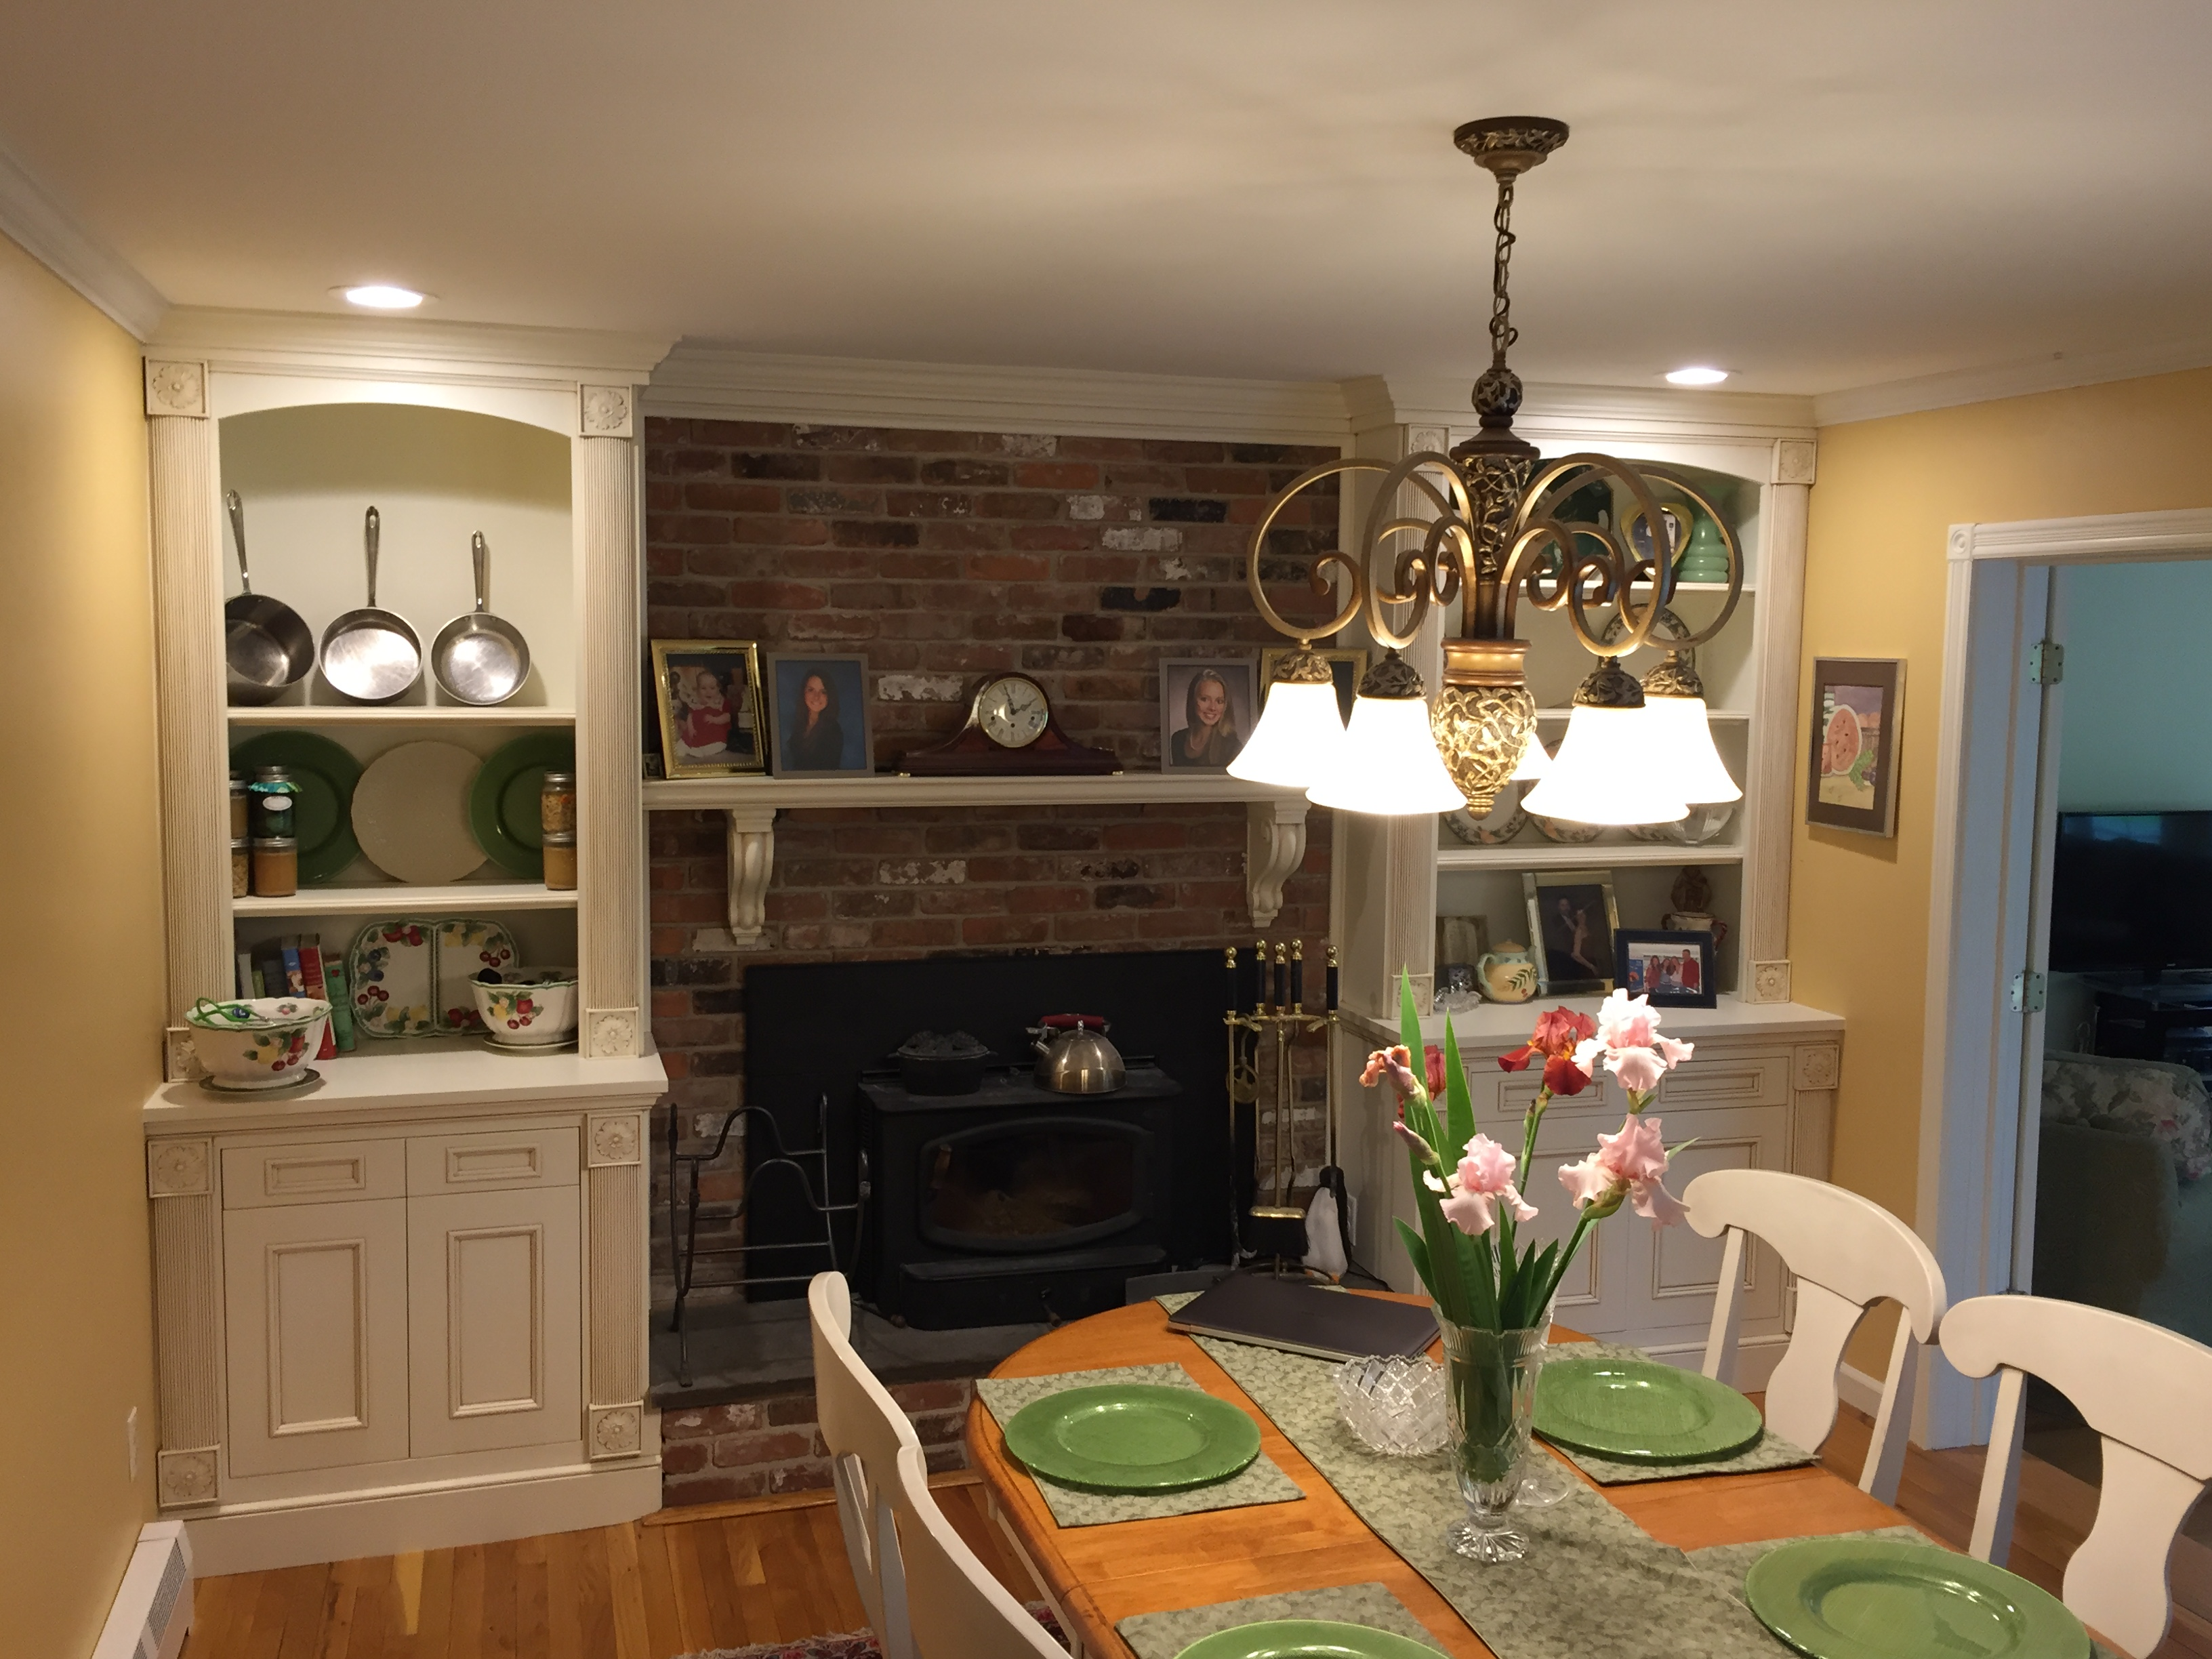 Dinning Room Cabinetry And Mantel